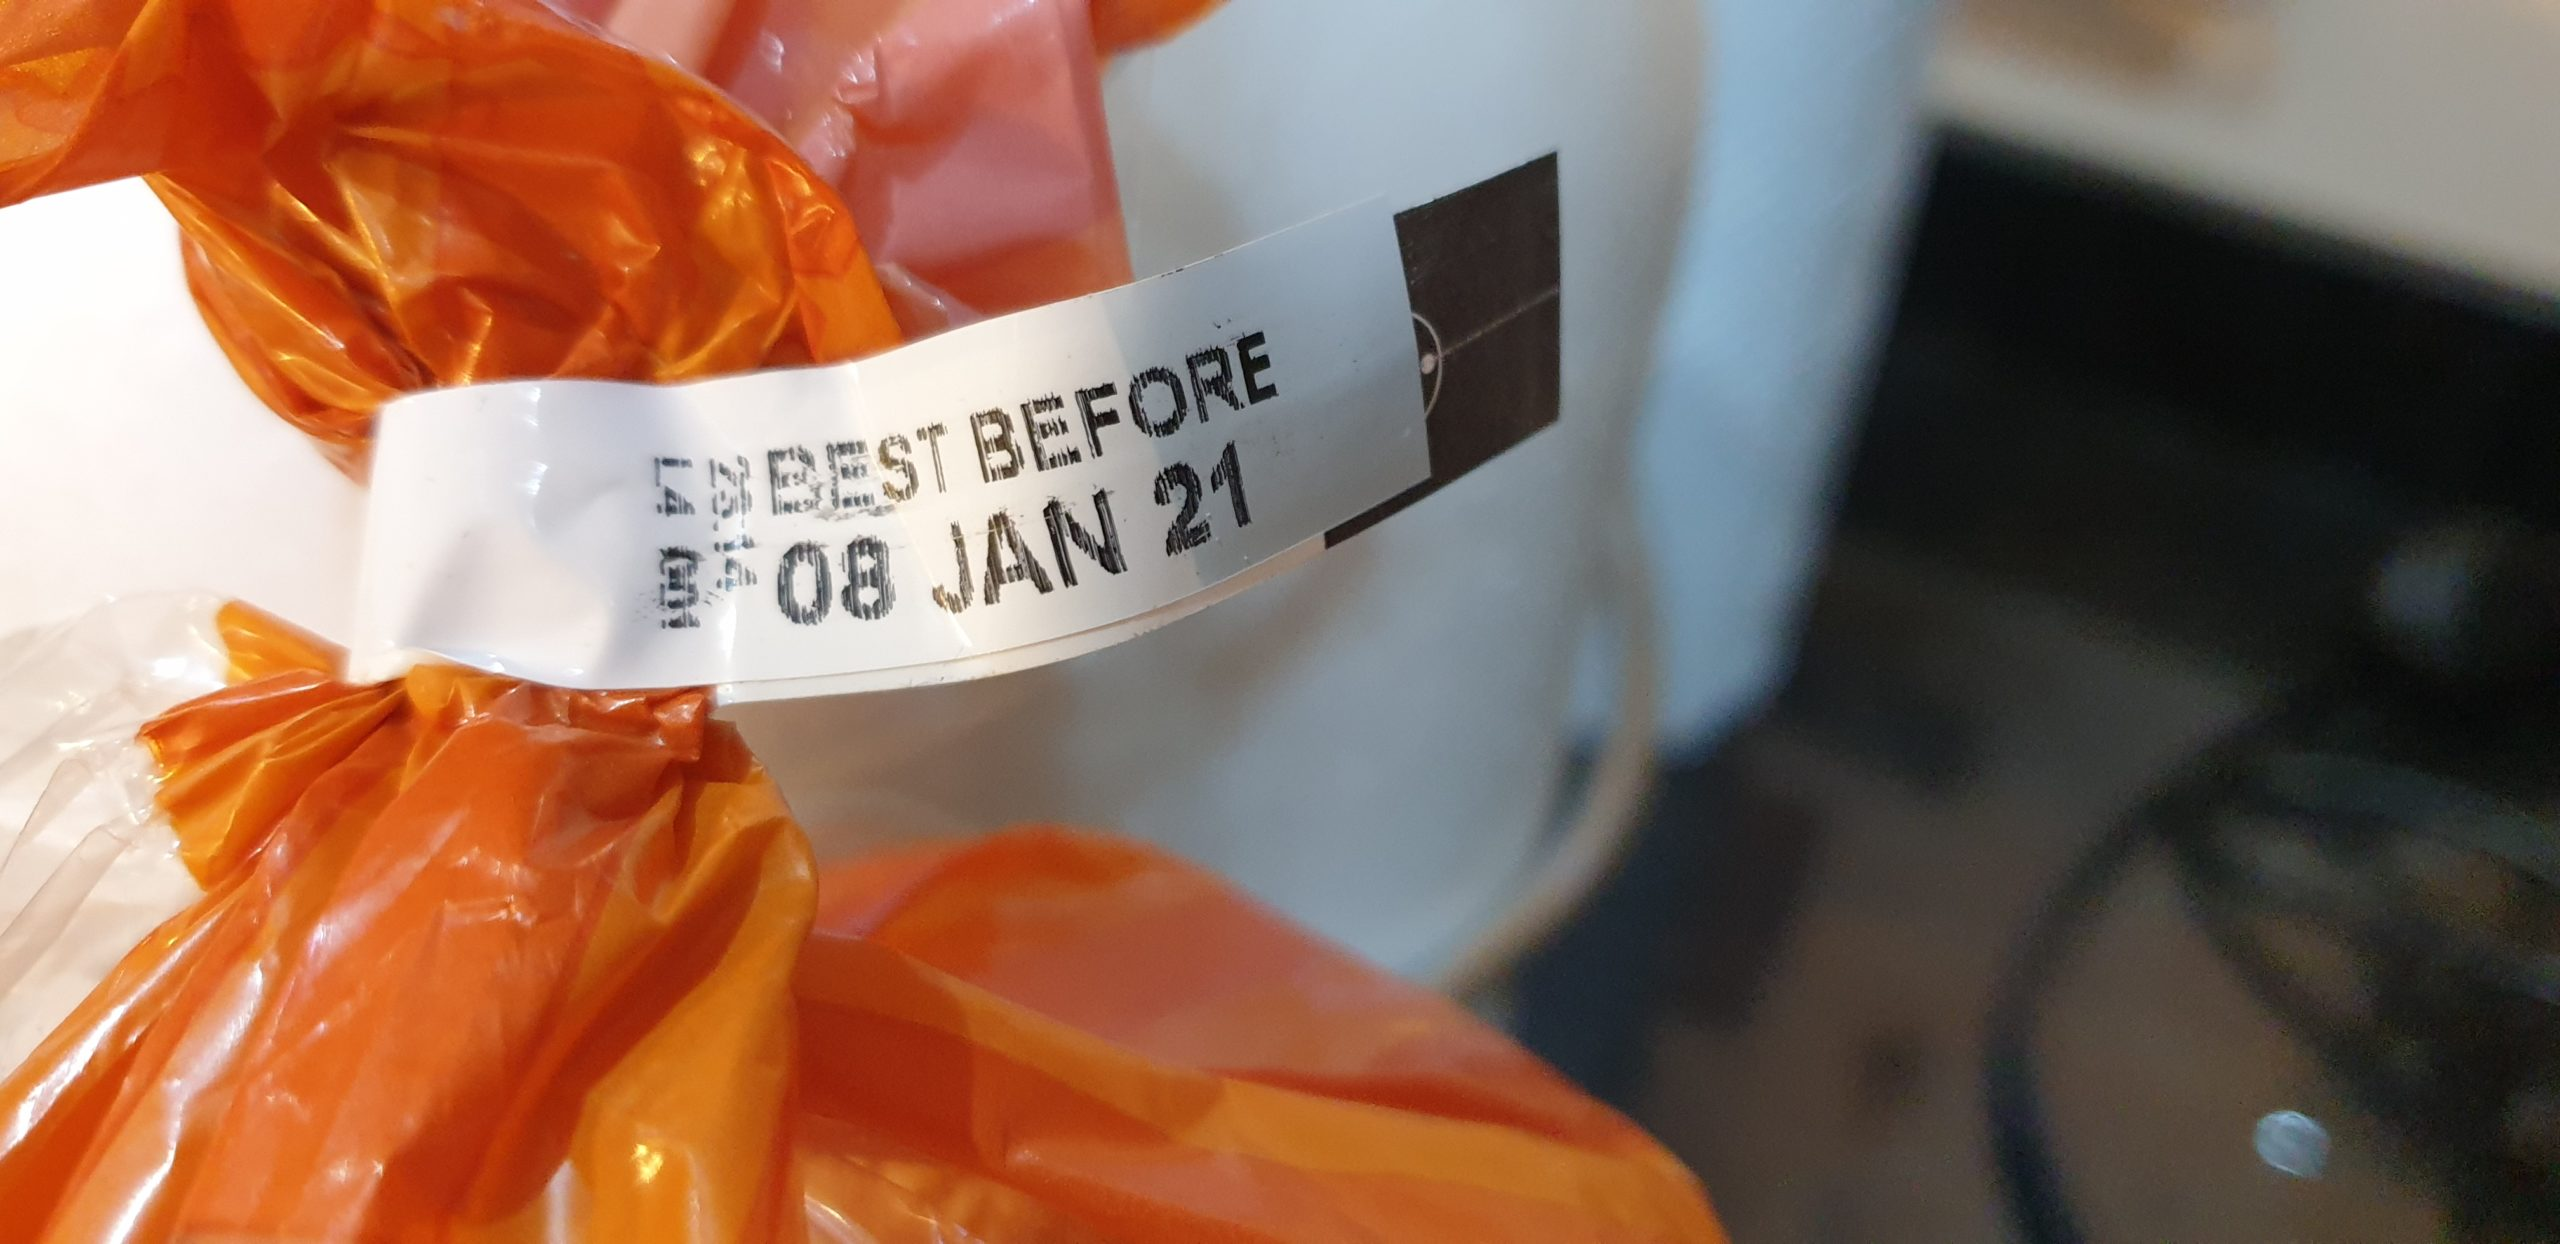 Label: Best Before 8 Jan 2021.